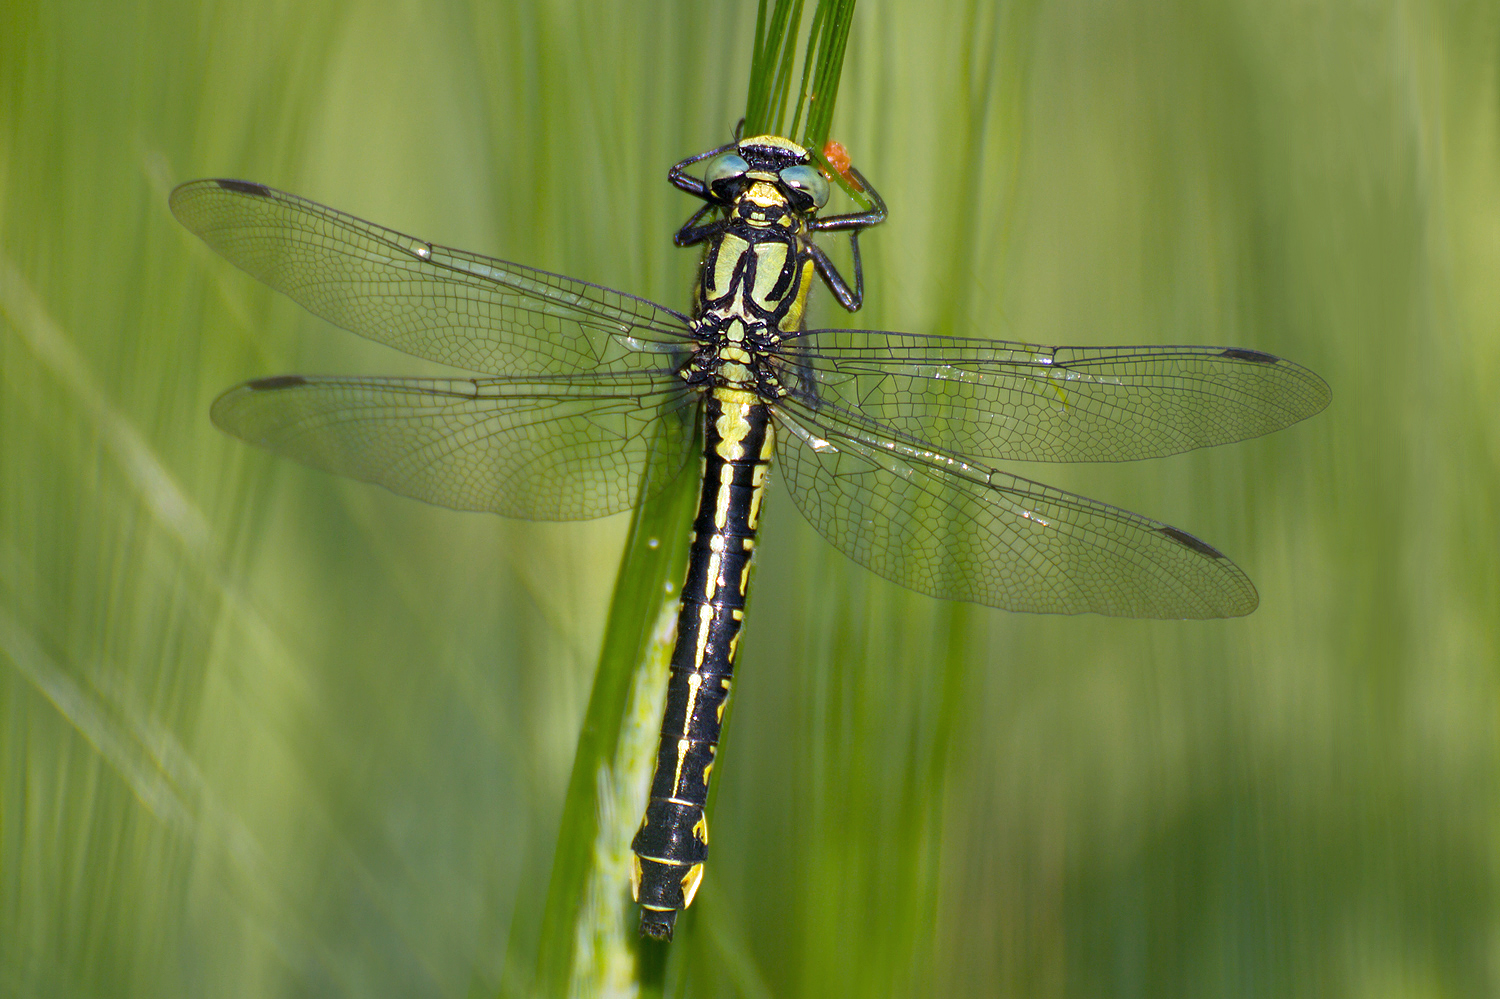 Club-tailed Dragonfly, Common Clubtail